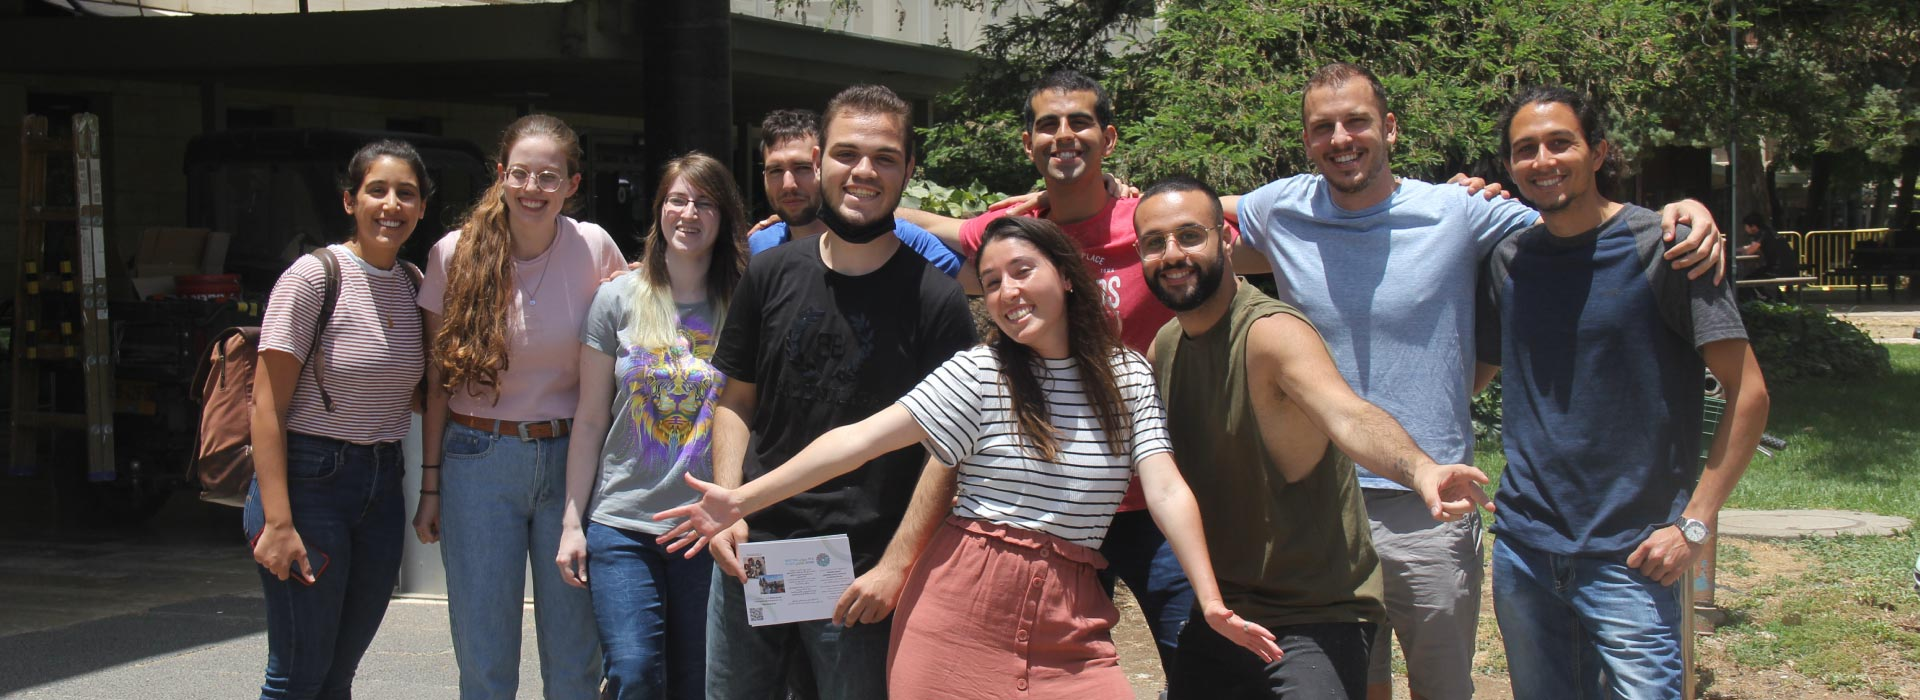 A group of students and their facilitators outside in the Givat Ram campus